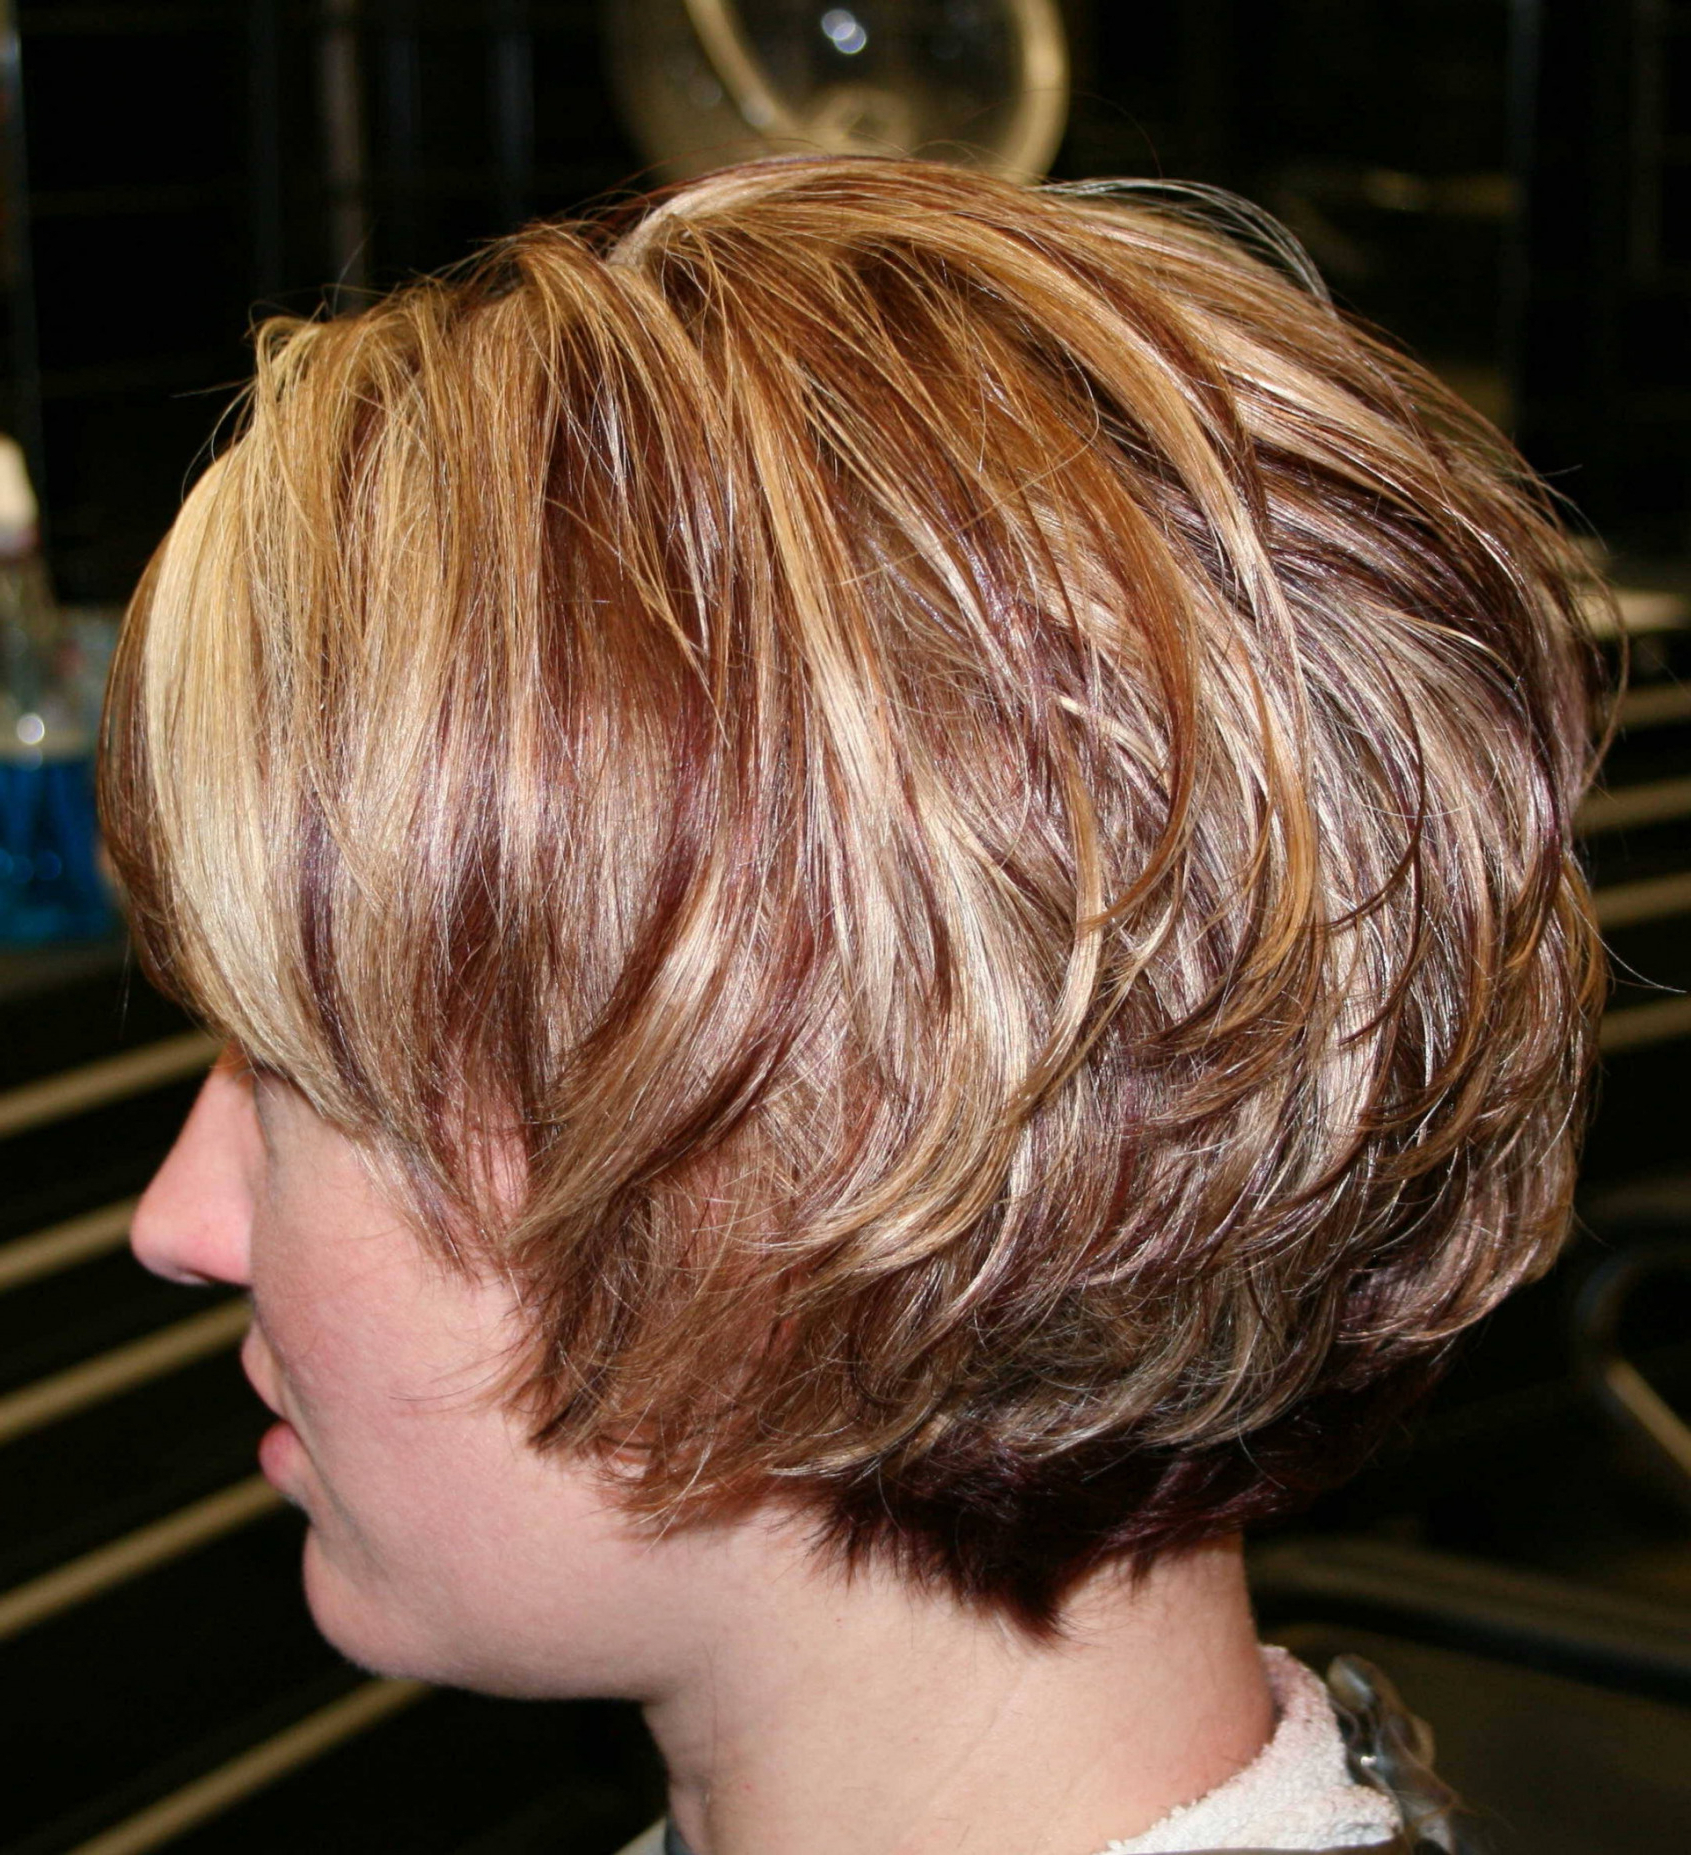 Short Layered Bob Hairstyles For Thick Hair | Hairstyle For Women With Short Bob Hairstyles With Feathered Layers (Gallery 5 of 20)